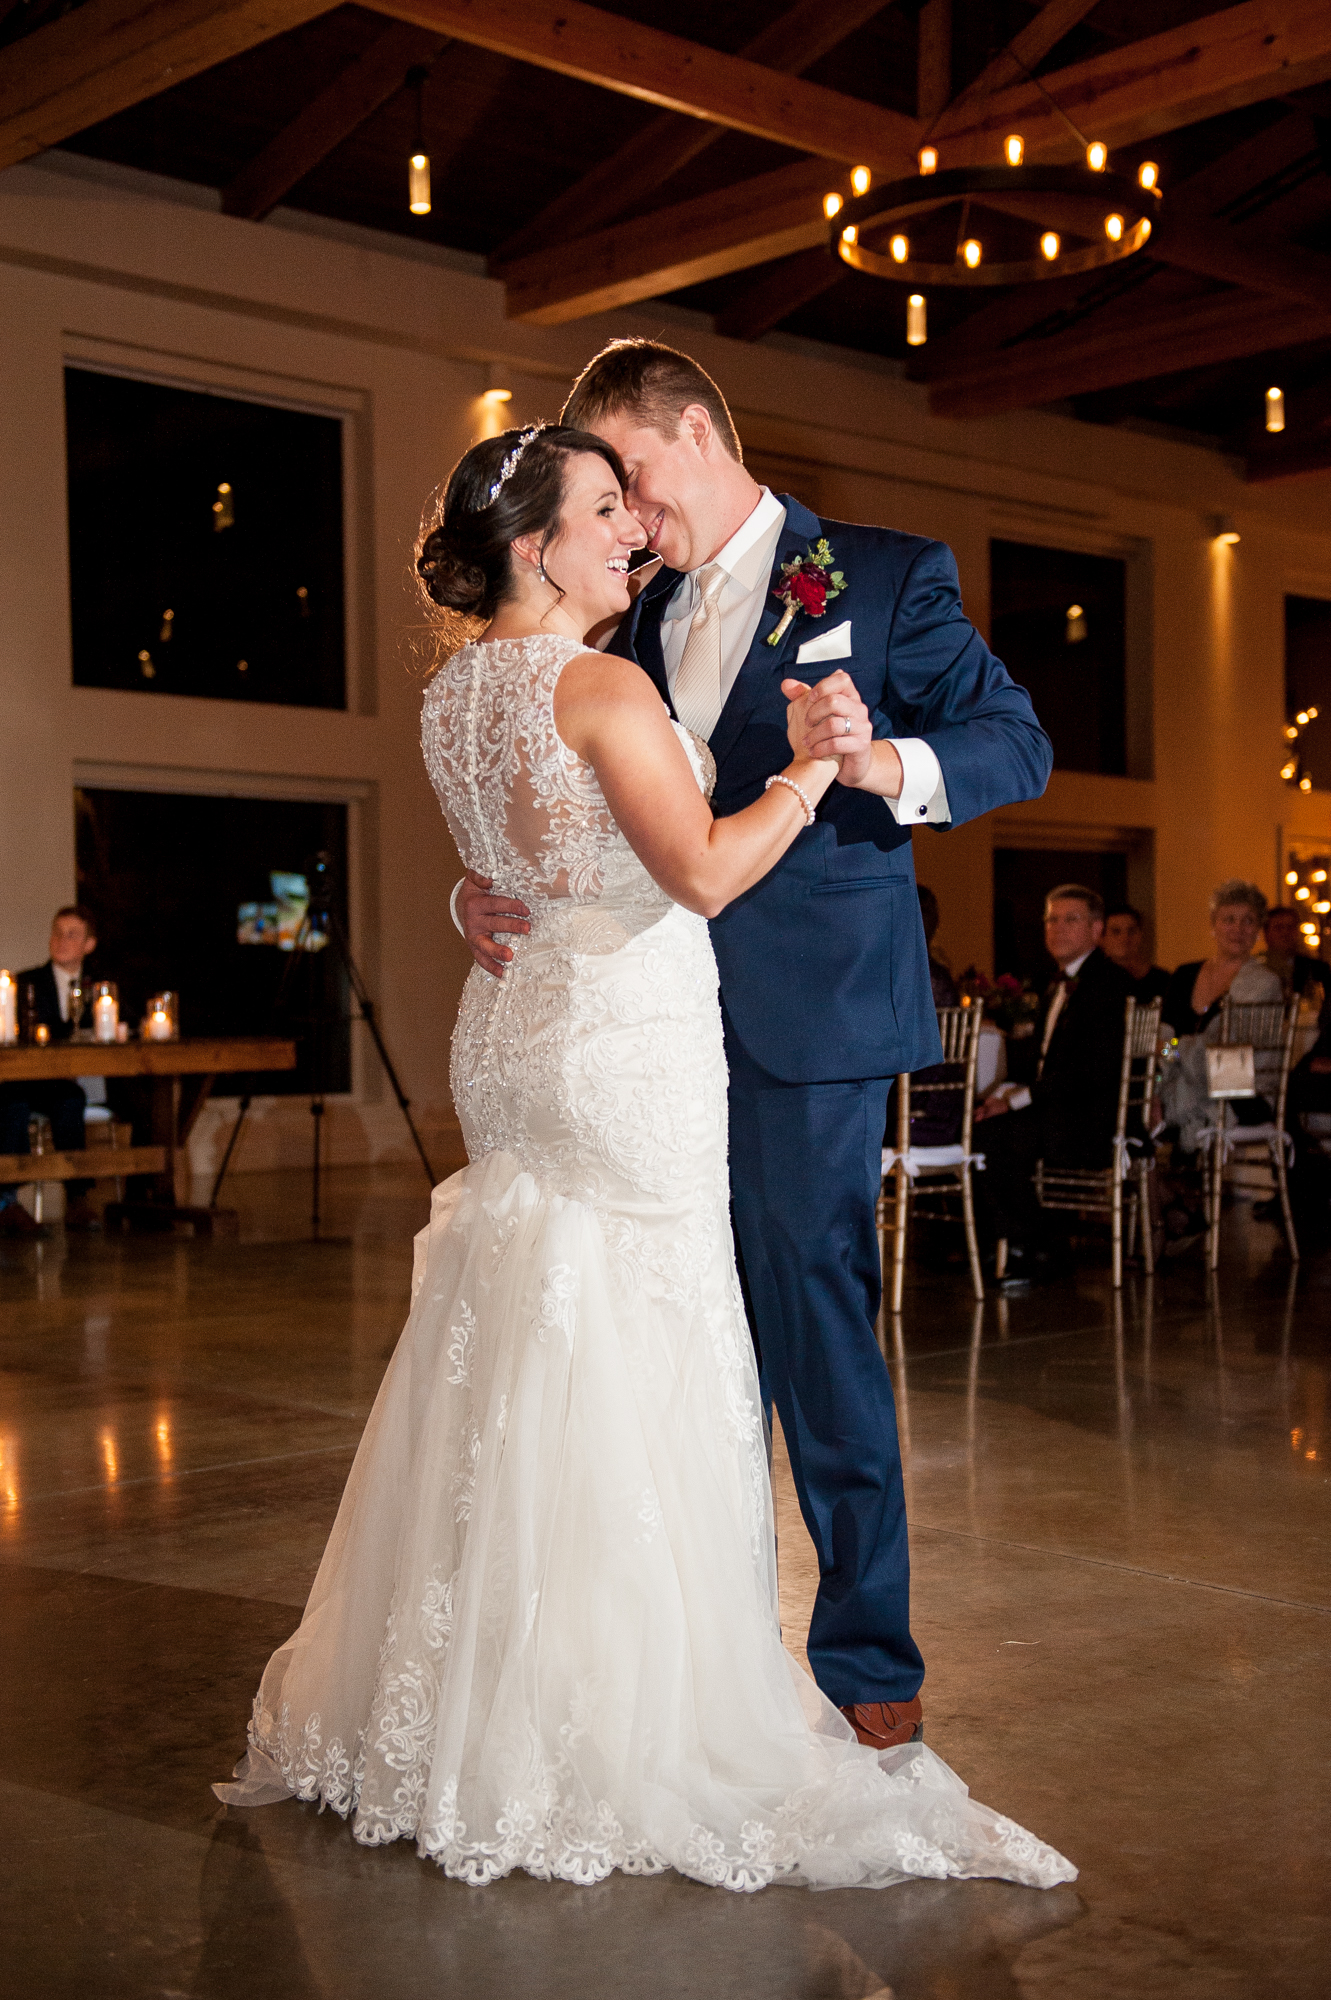 First dance photos are where my off-camera flash (gridded, cross-lighting) really shines.  Again, I don't want to light up the whole room, but I want the bride and groom to be lit well.  This gives me a clear line of sight from the flash to their faces, and again gives me the true color and skin tones on them that I strive for.  One other thing of note on this image - the hair light you see behind their heads was actually a continuous video light from the videographer.  So even with using flash, I can still make use of ambient light, especially uplighting or chandeliers. :)